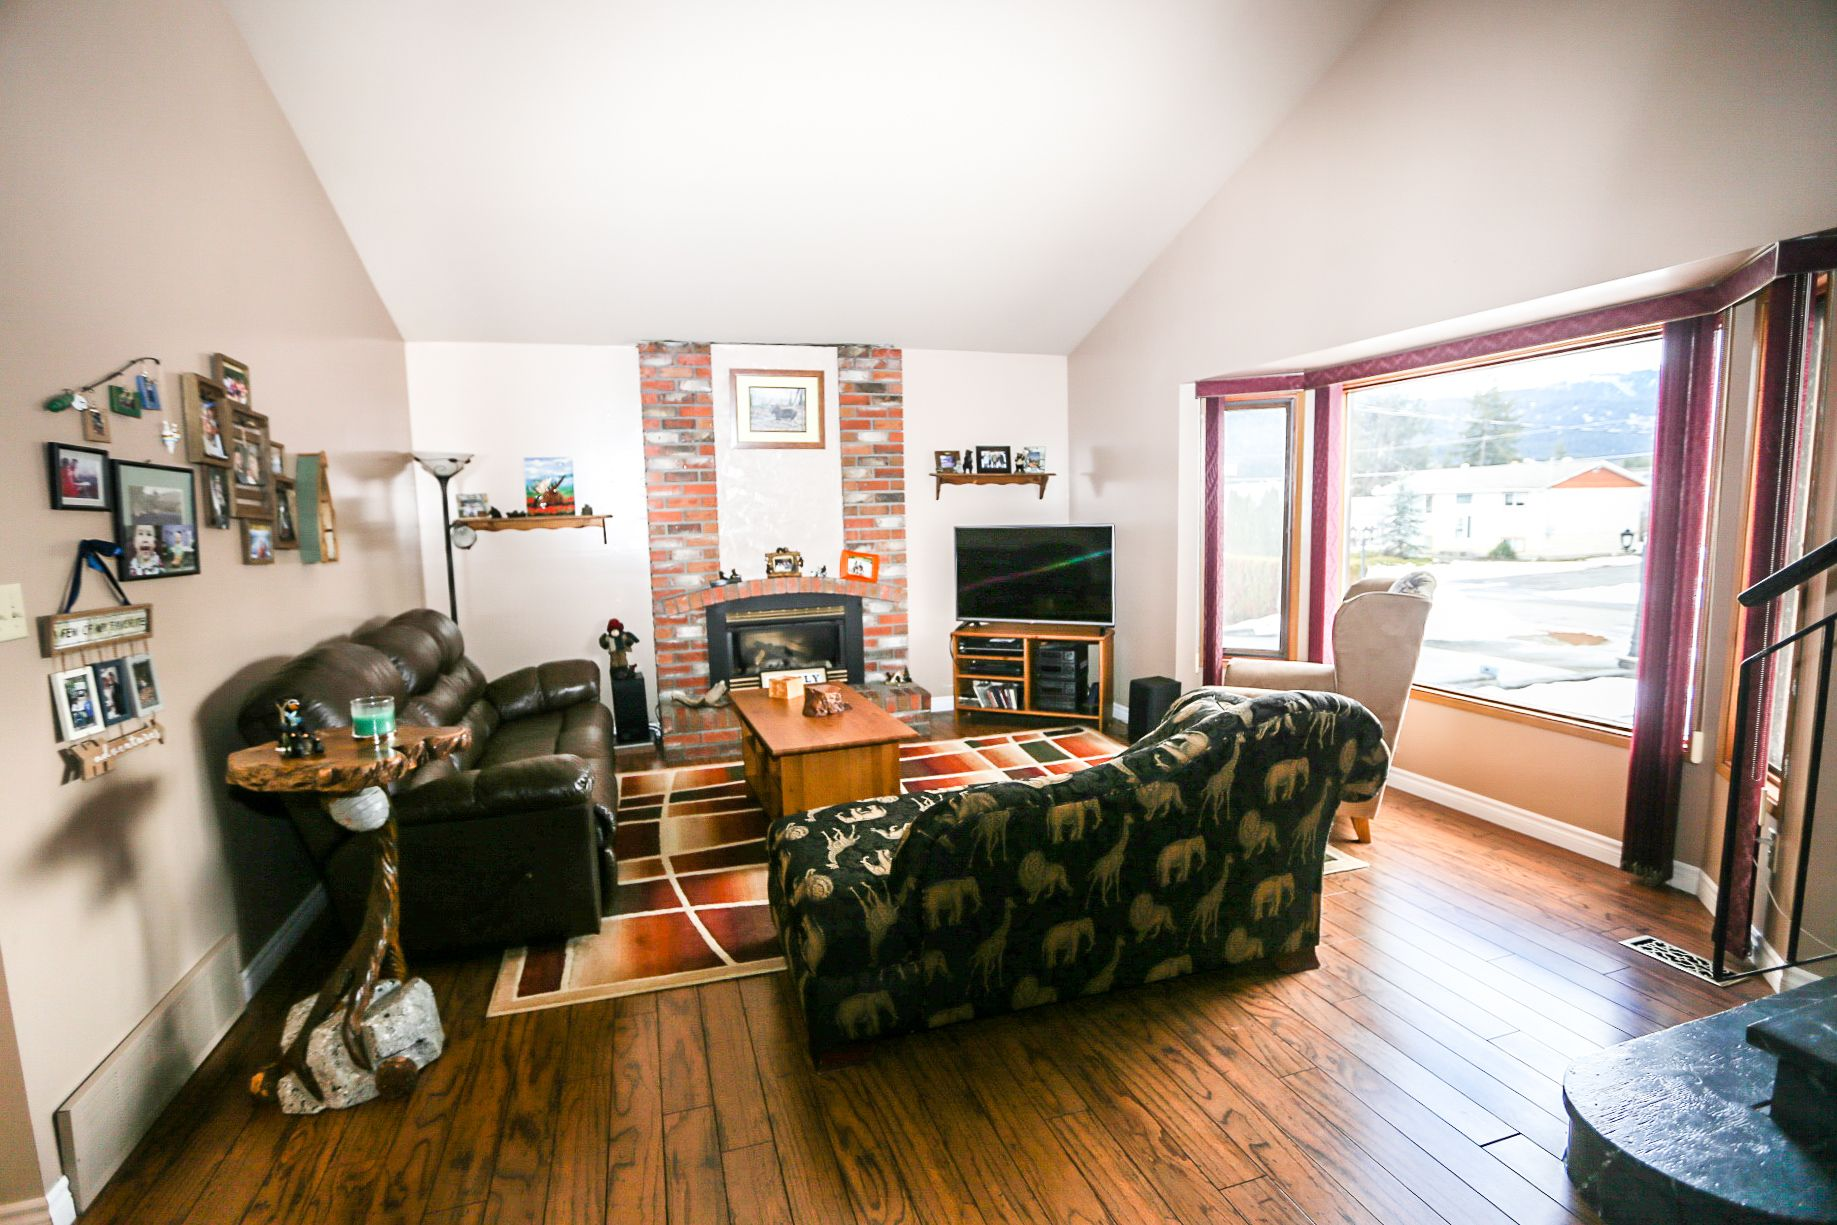 Photo 11: Photos: 434 ROBIN DRIVE: BARRIERE House for sale (NORTH EAST)  : MLS®# 160553